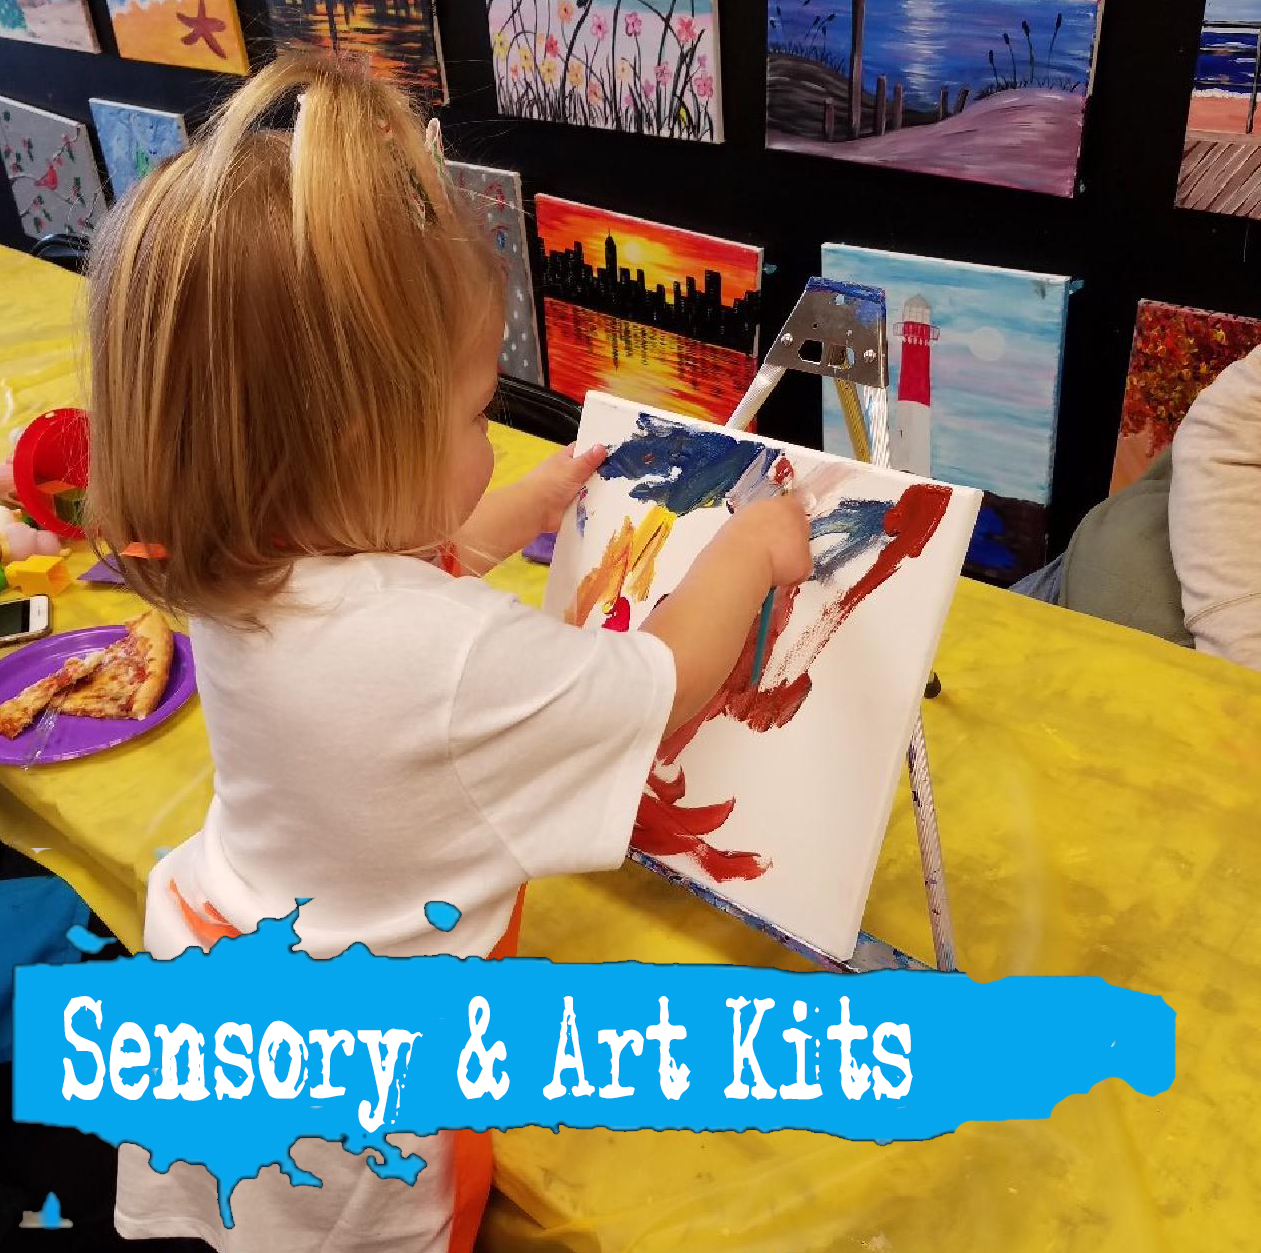 Sensory and Art Kits for Kids